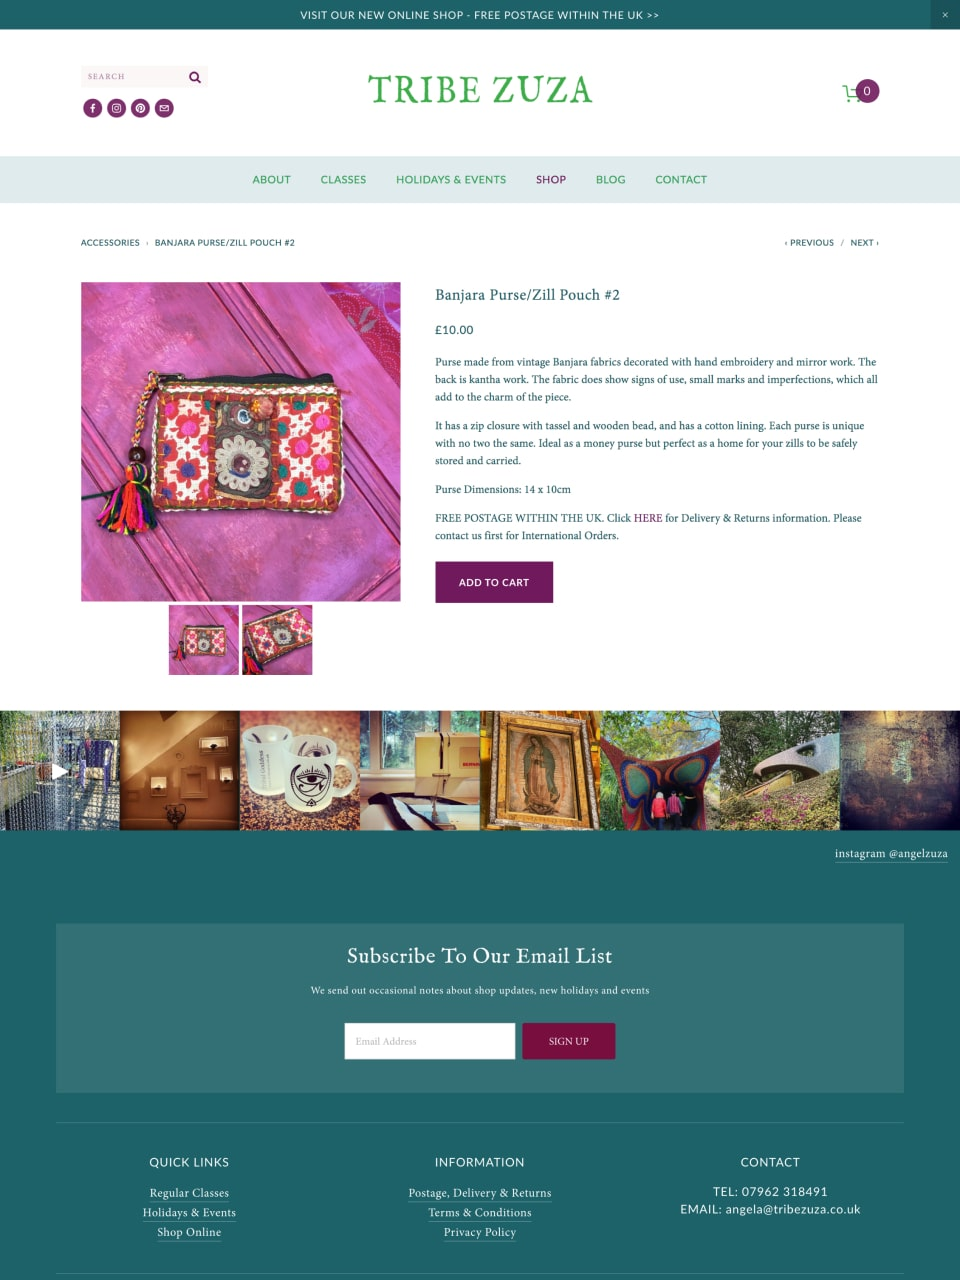 Tribe Zuza Website Shop Detail Page